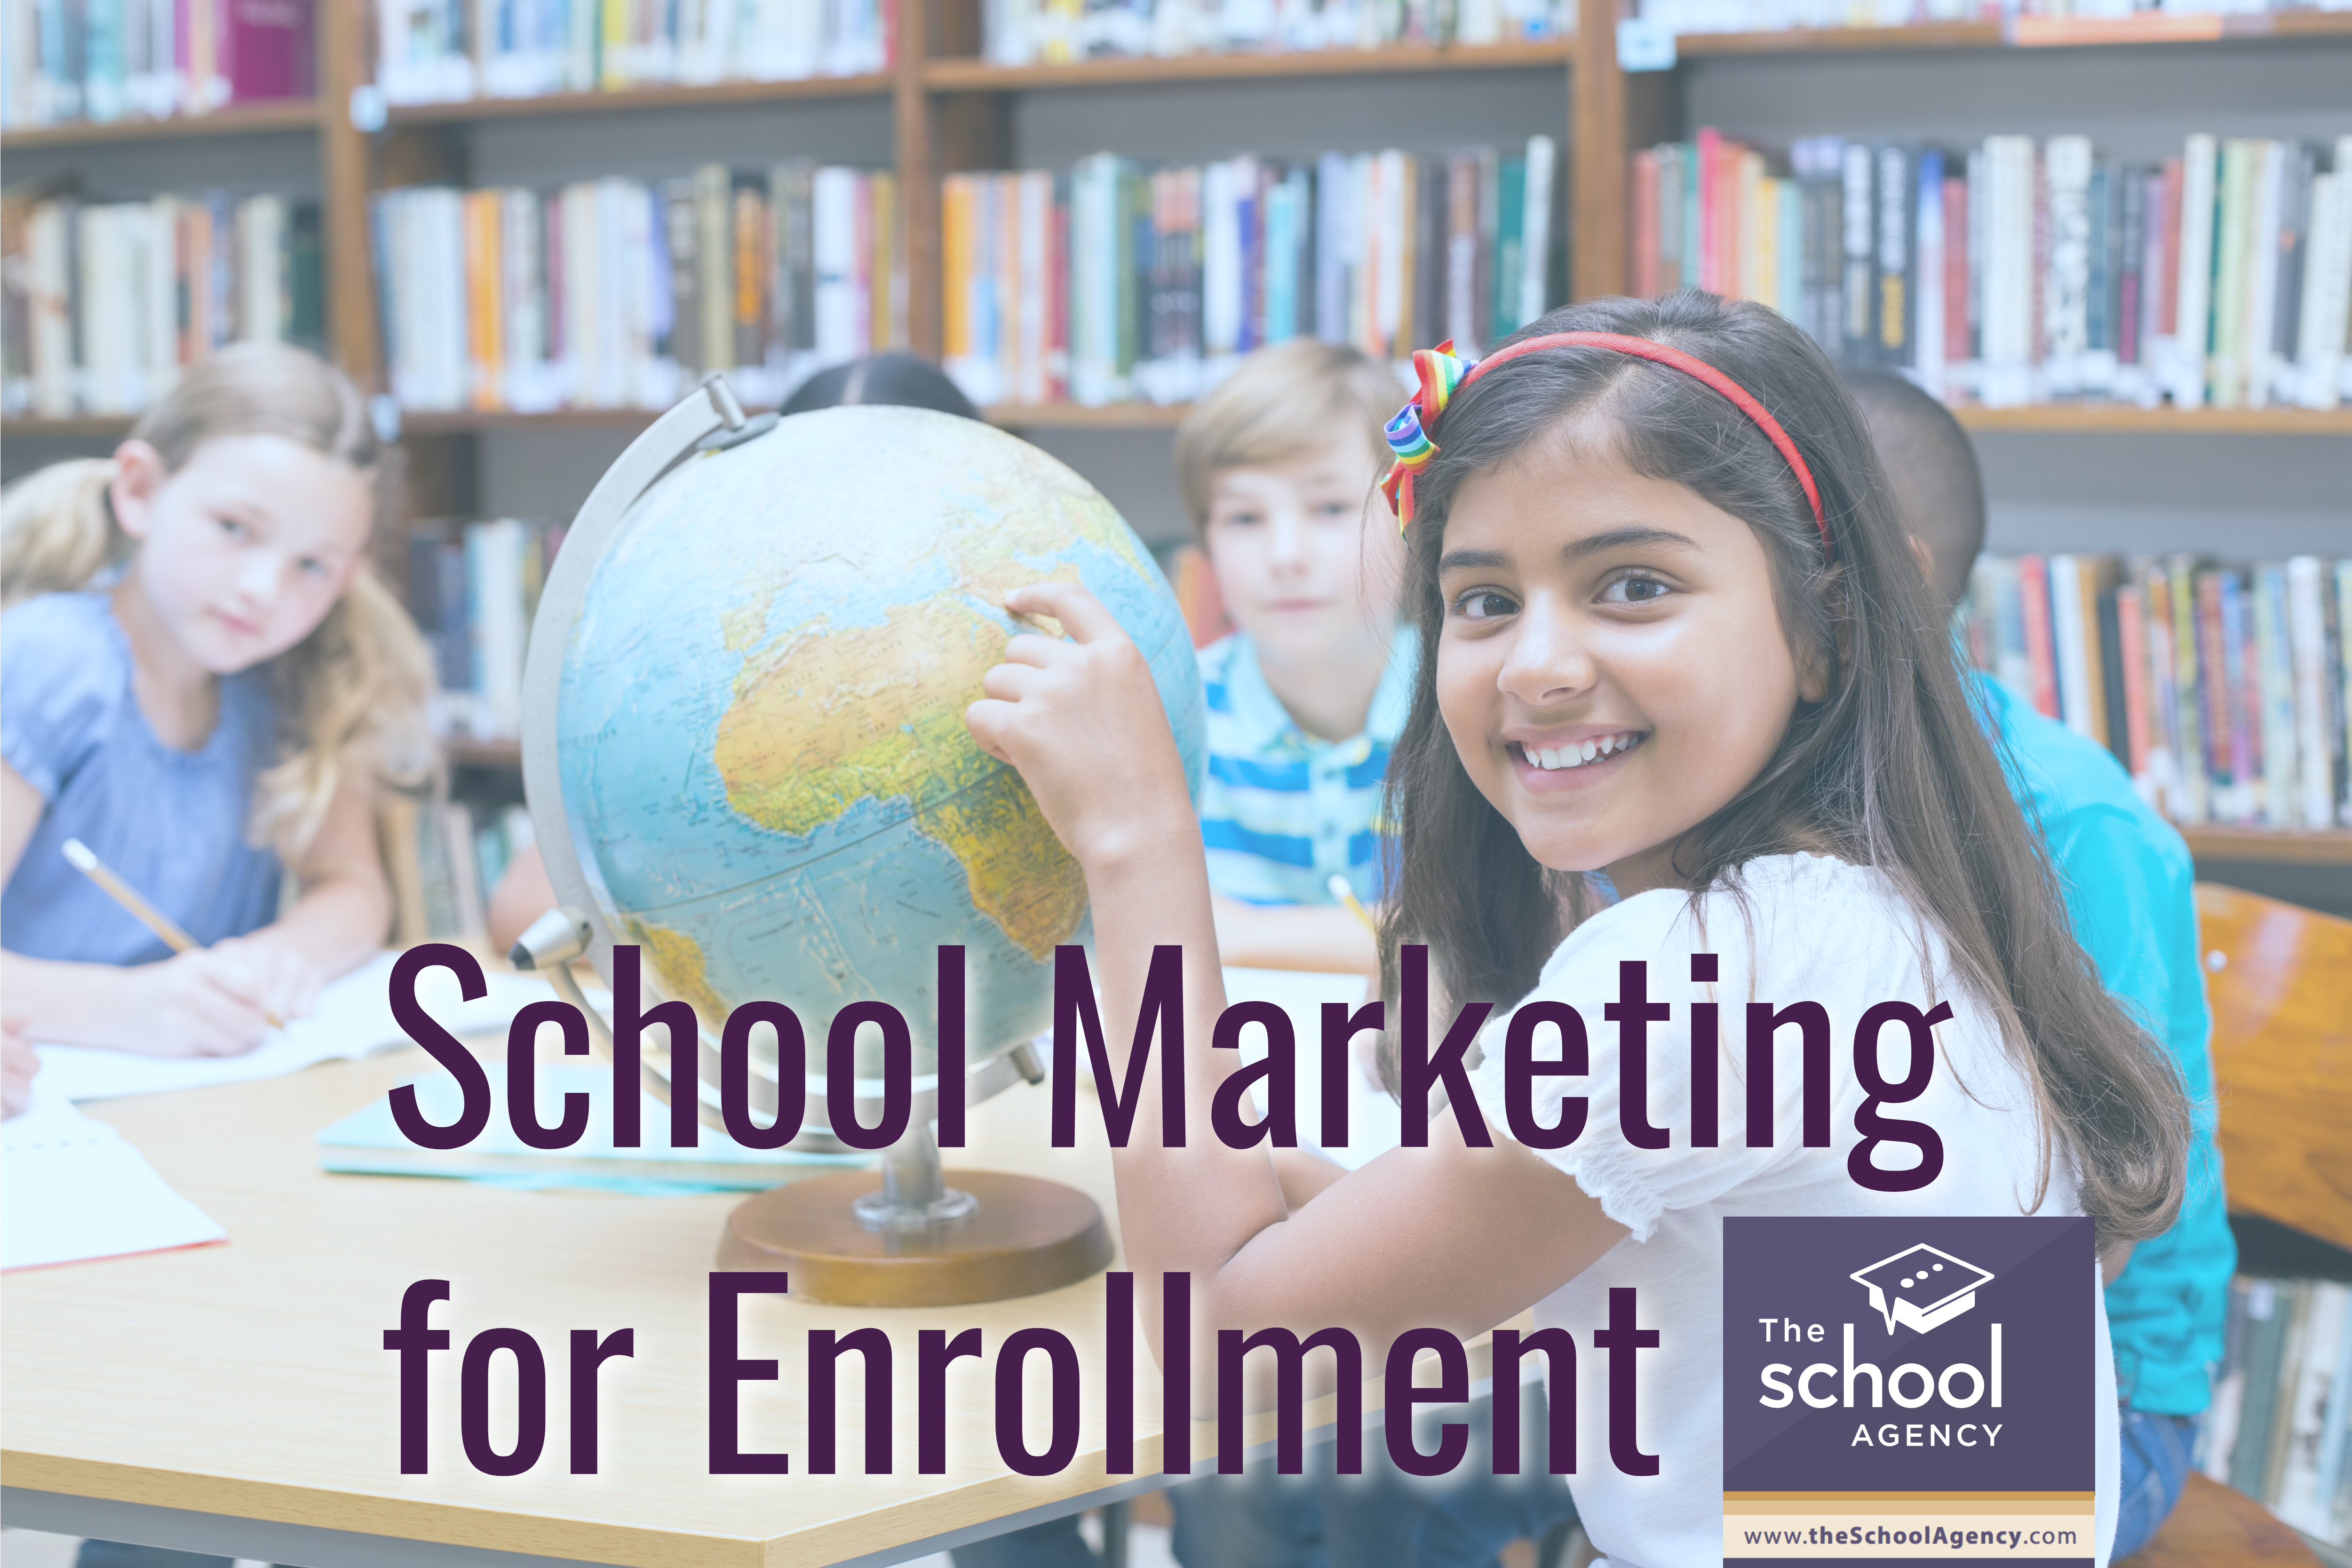 School Marketing - for enrollment.